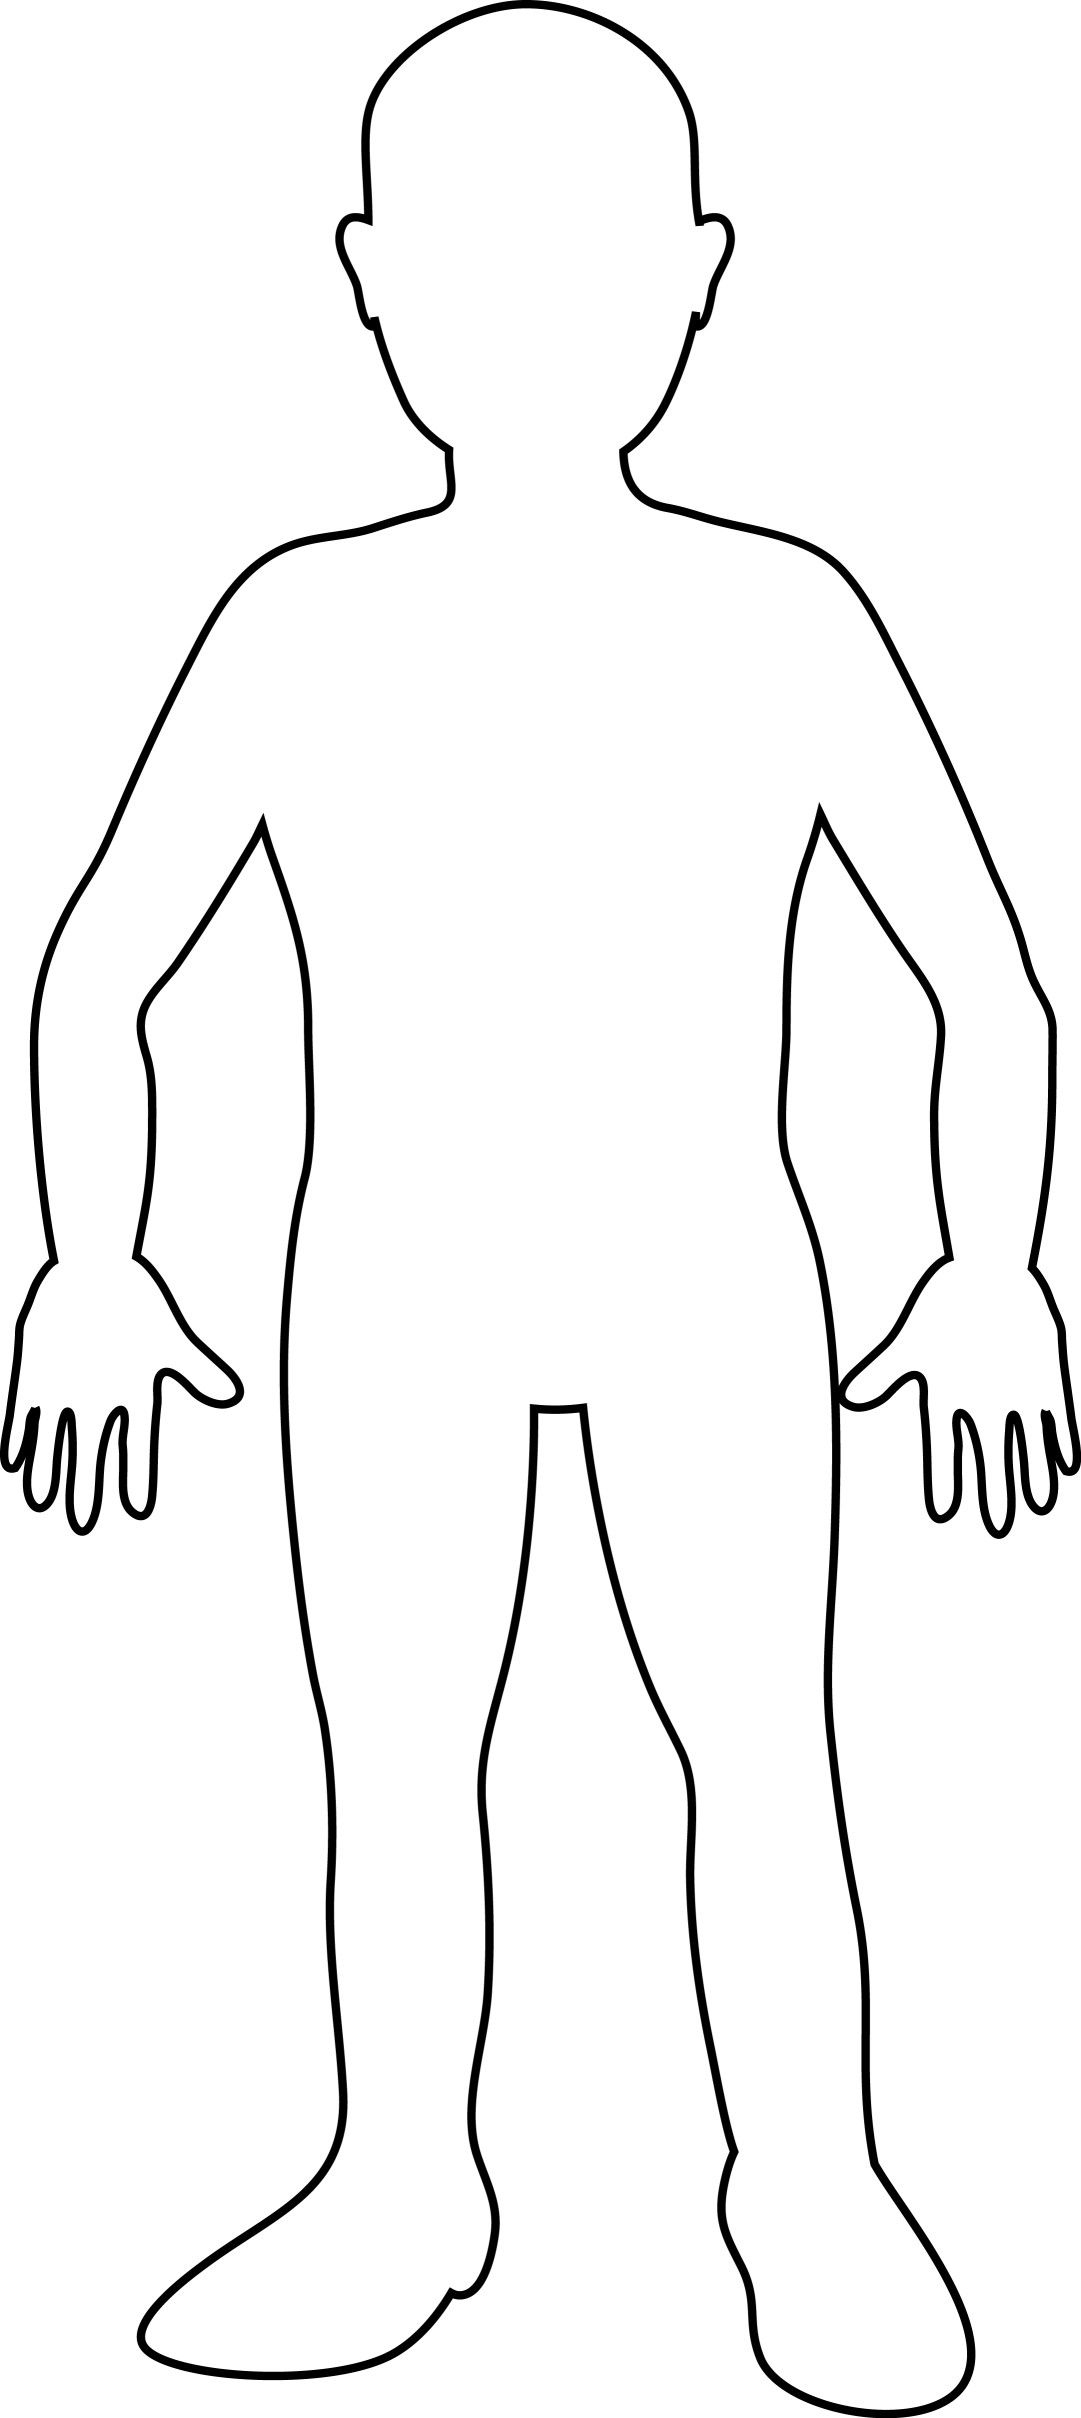 Free Printable Human Body Template